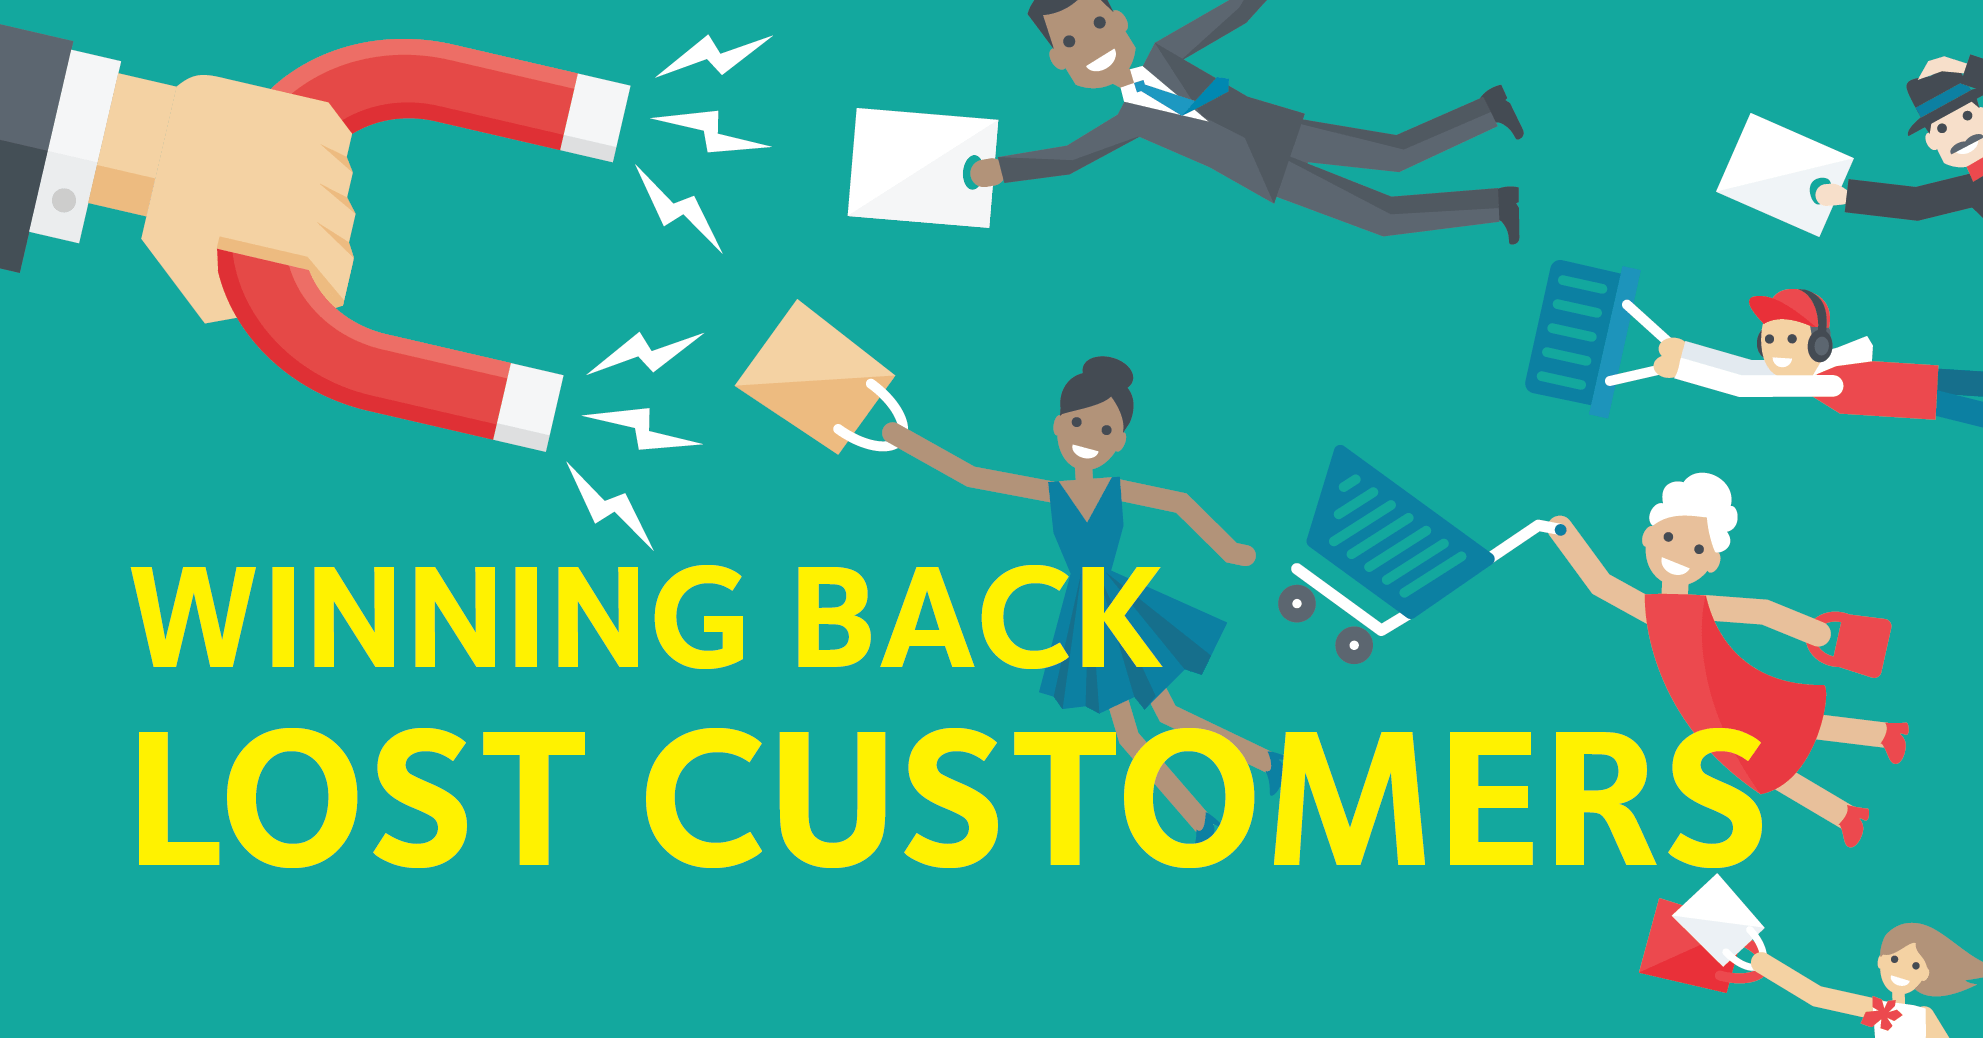 Why winning back lost customers makes sense